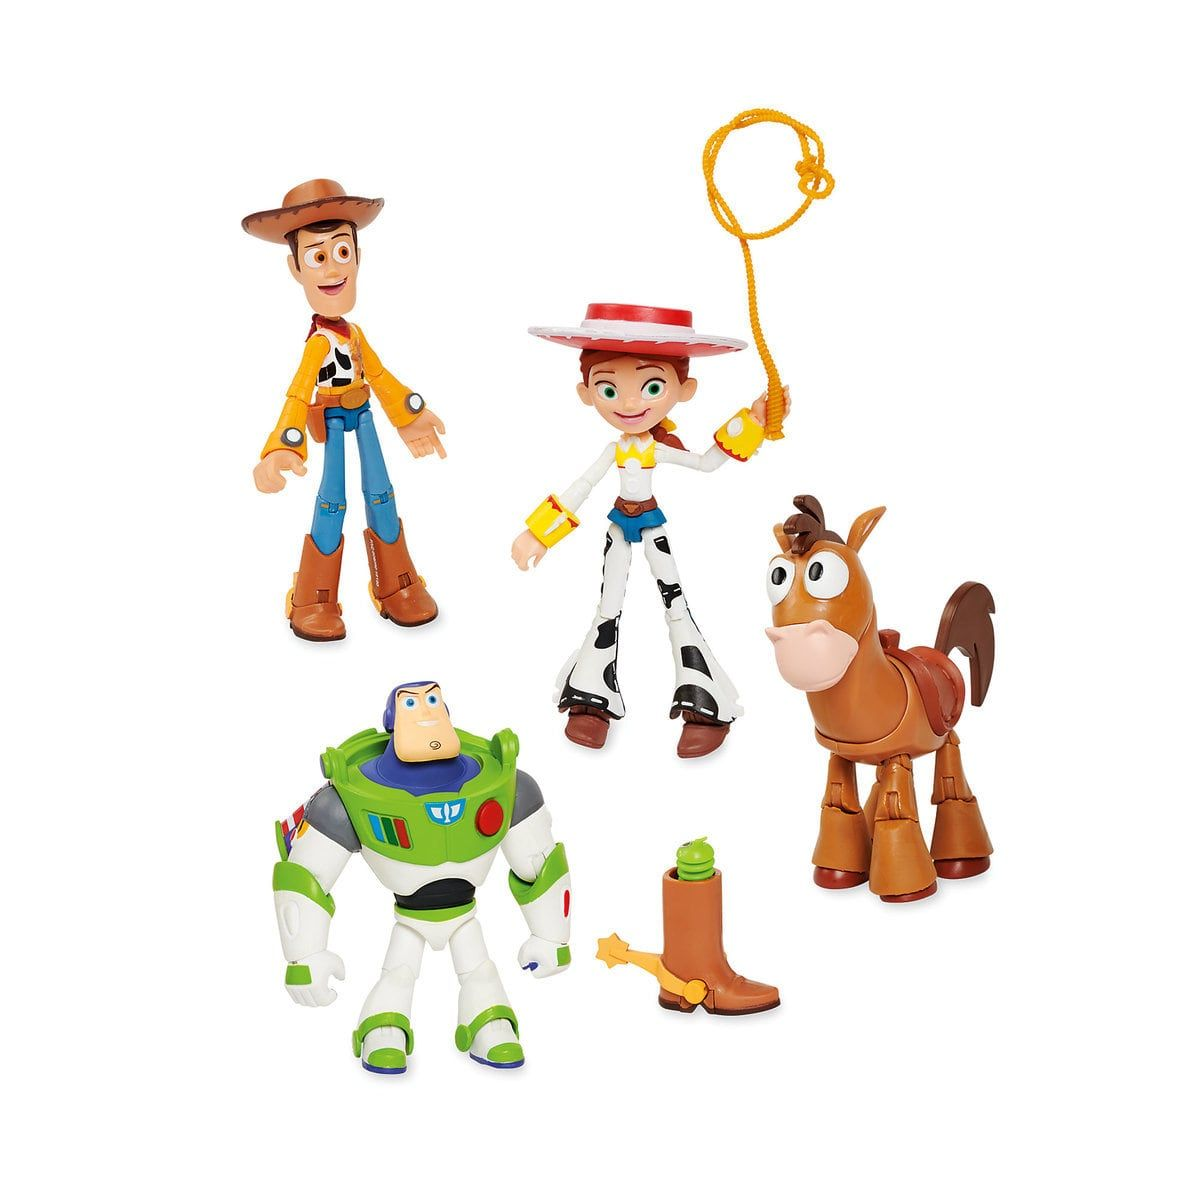 Toy Story Action Figures Pixar Toybox Action Figures Toy Story Series Drawing Cartoon Characters